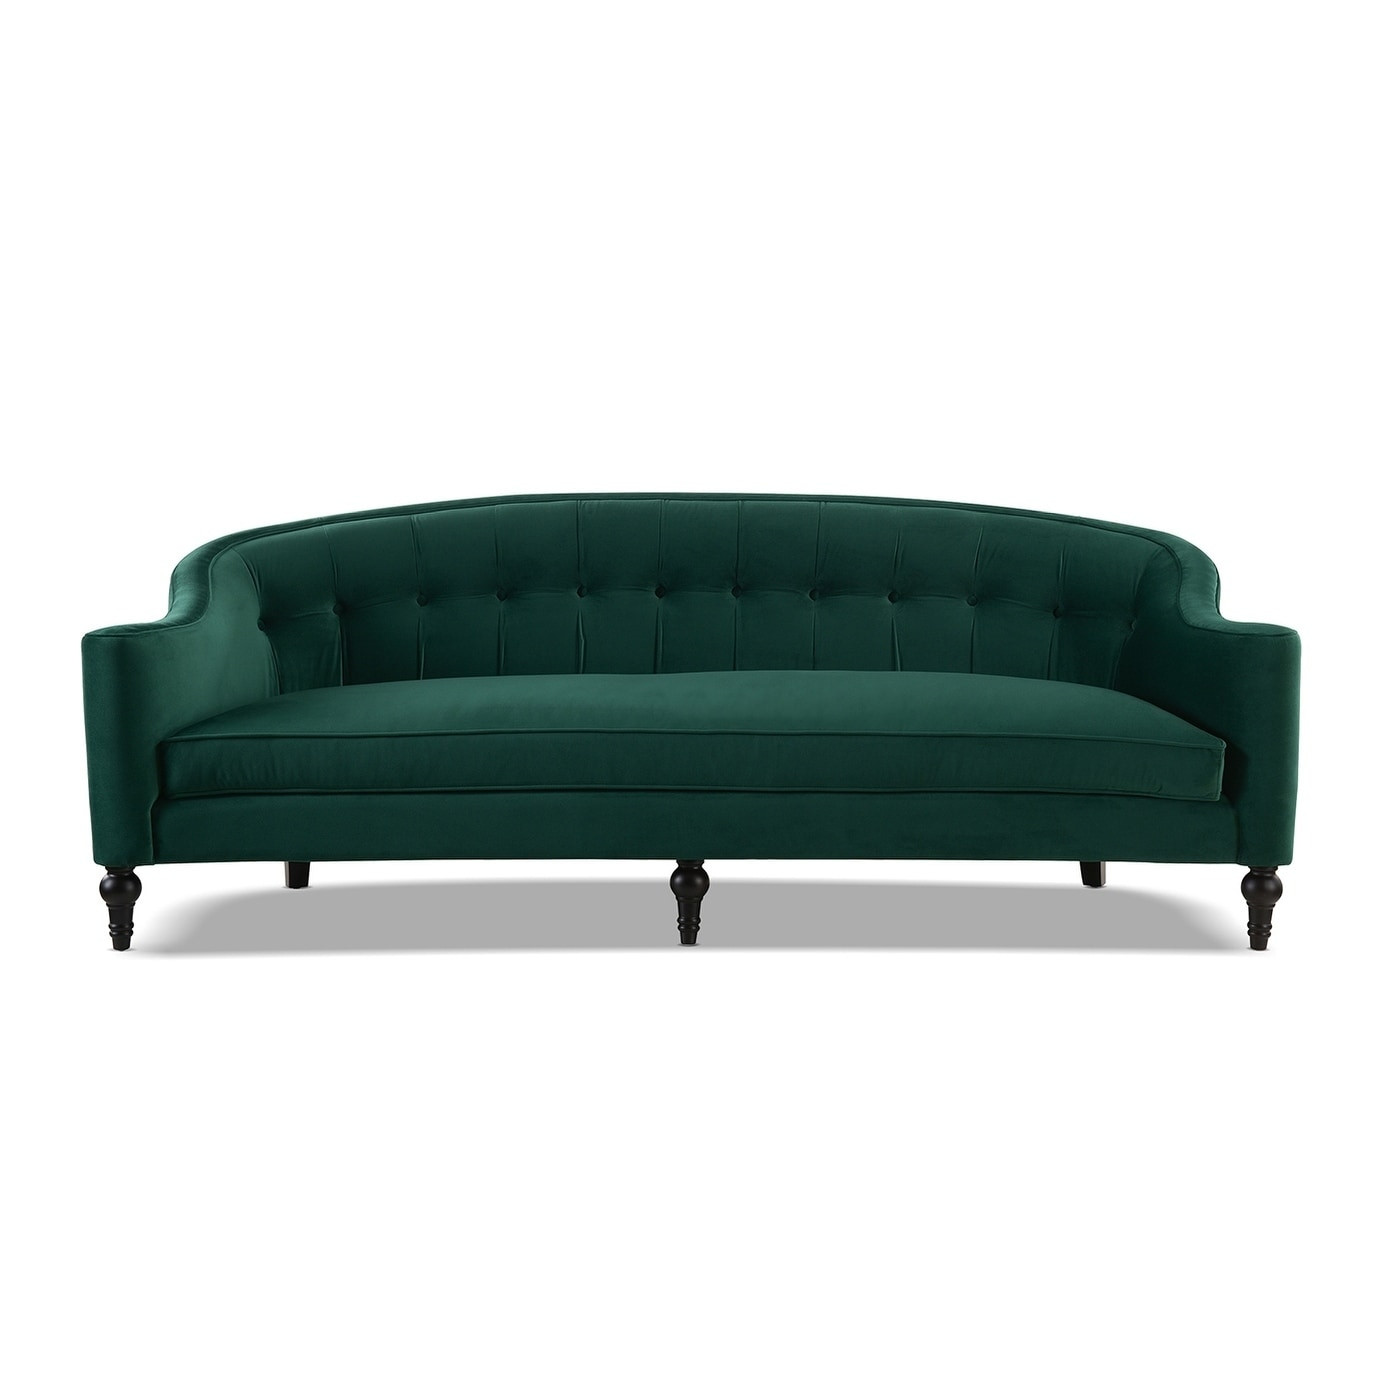 Curved Back Sofa Bed Infiniti Curve Back Sofa Reviews Crate